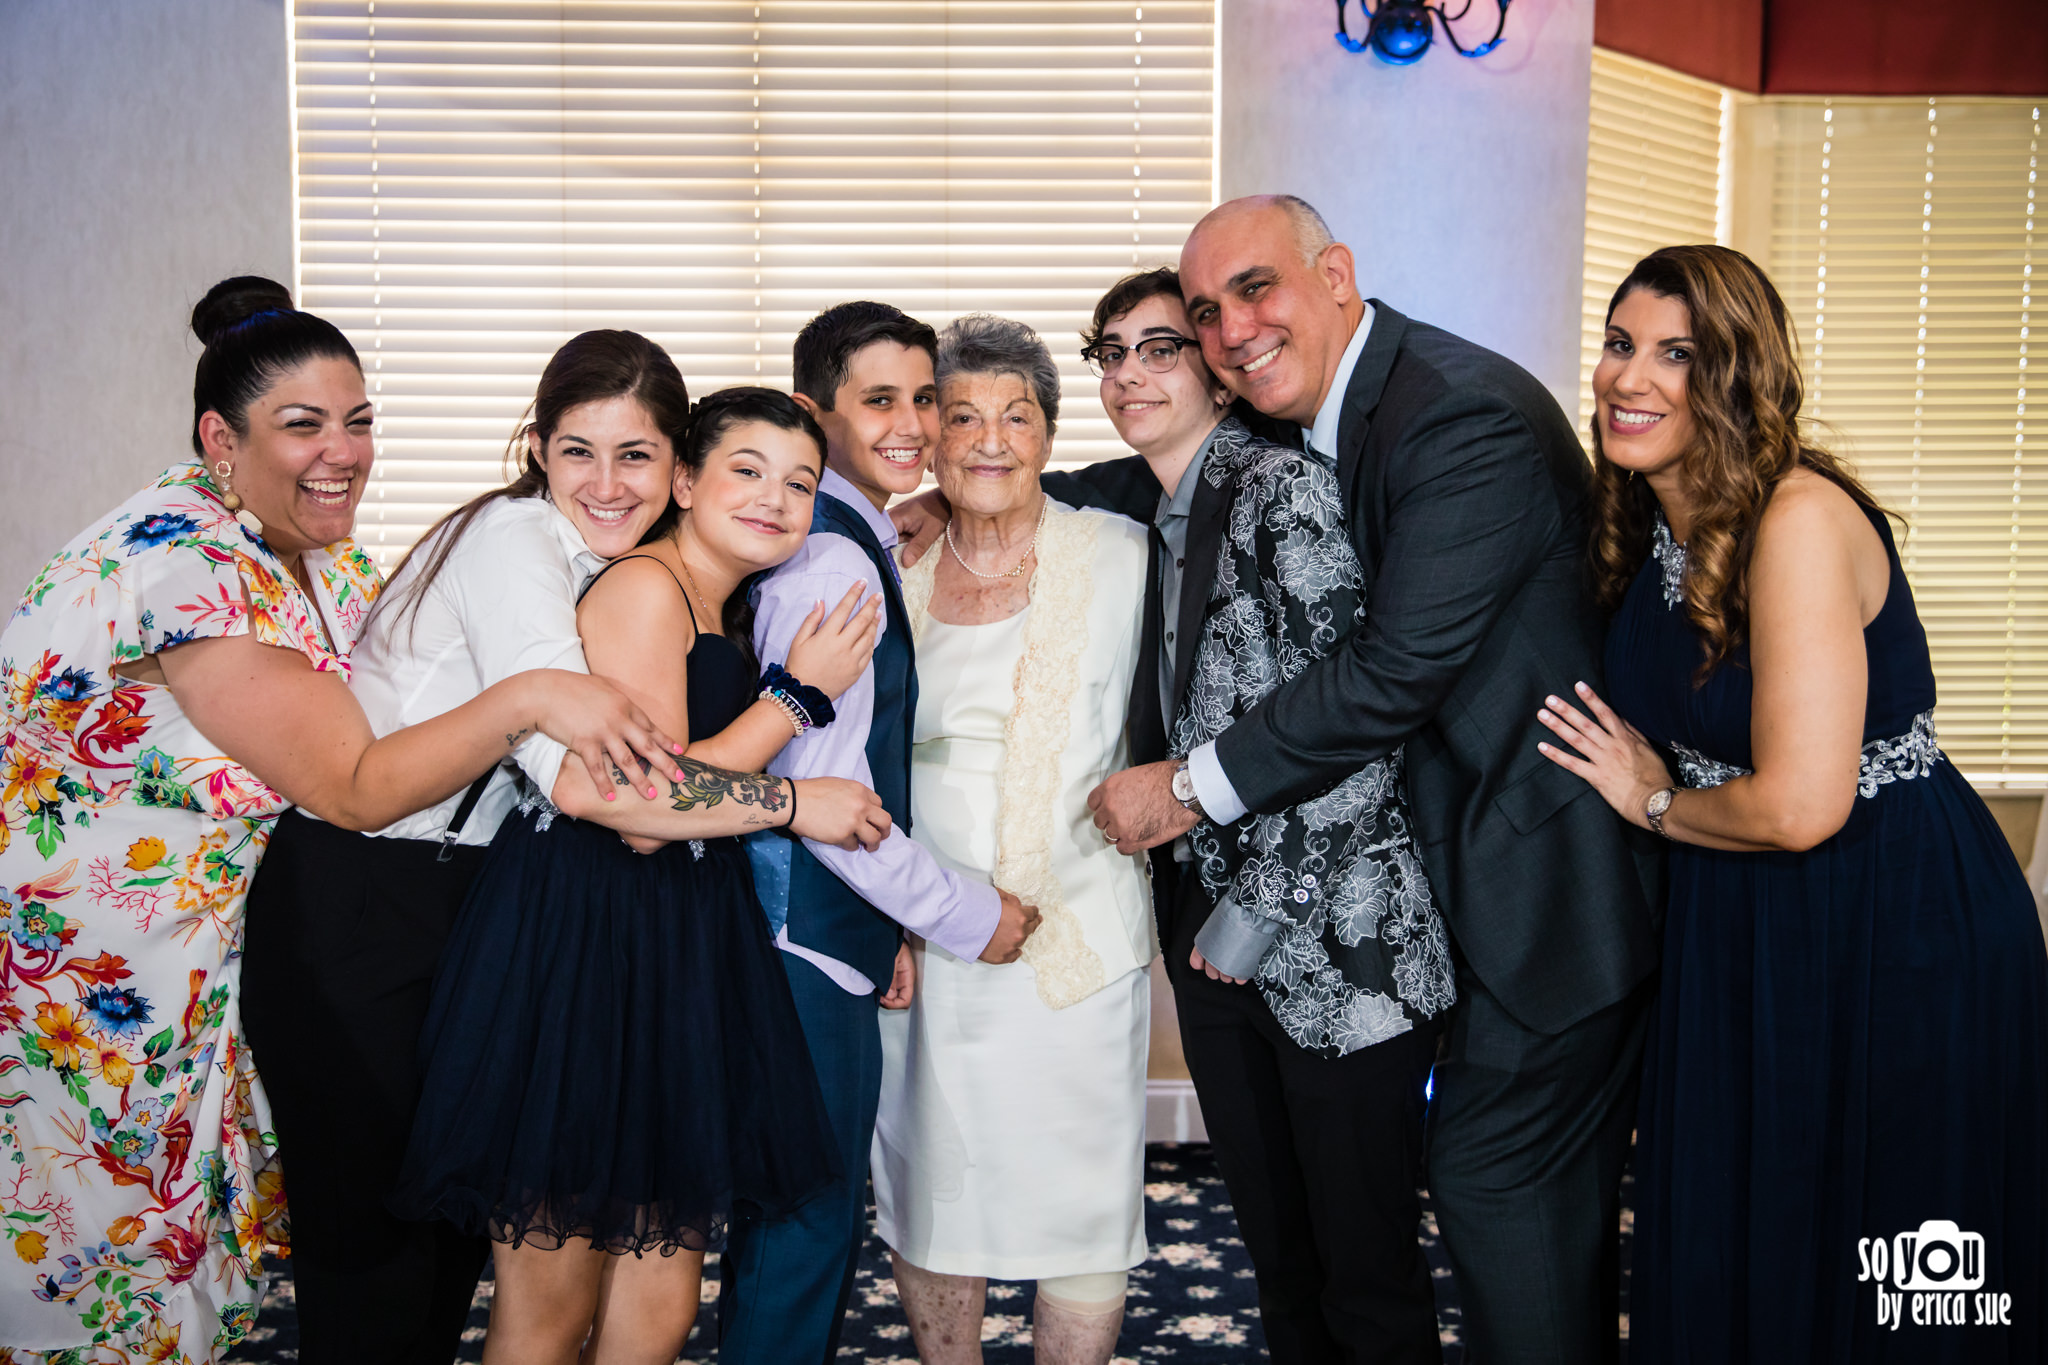 so-you-by-erica-sue-bnai-mitzvah-photographer-delray-beach-golf-club-fl-3554.jpg